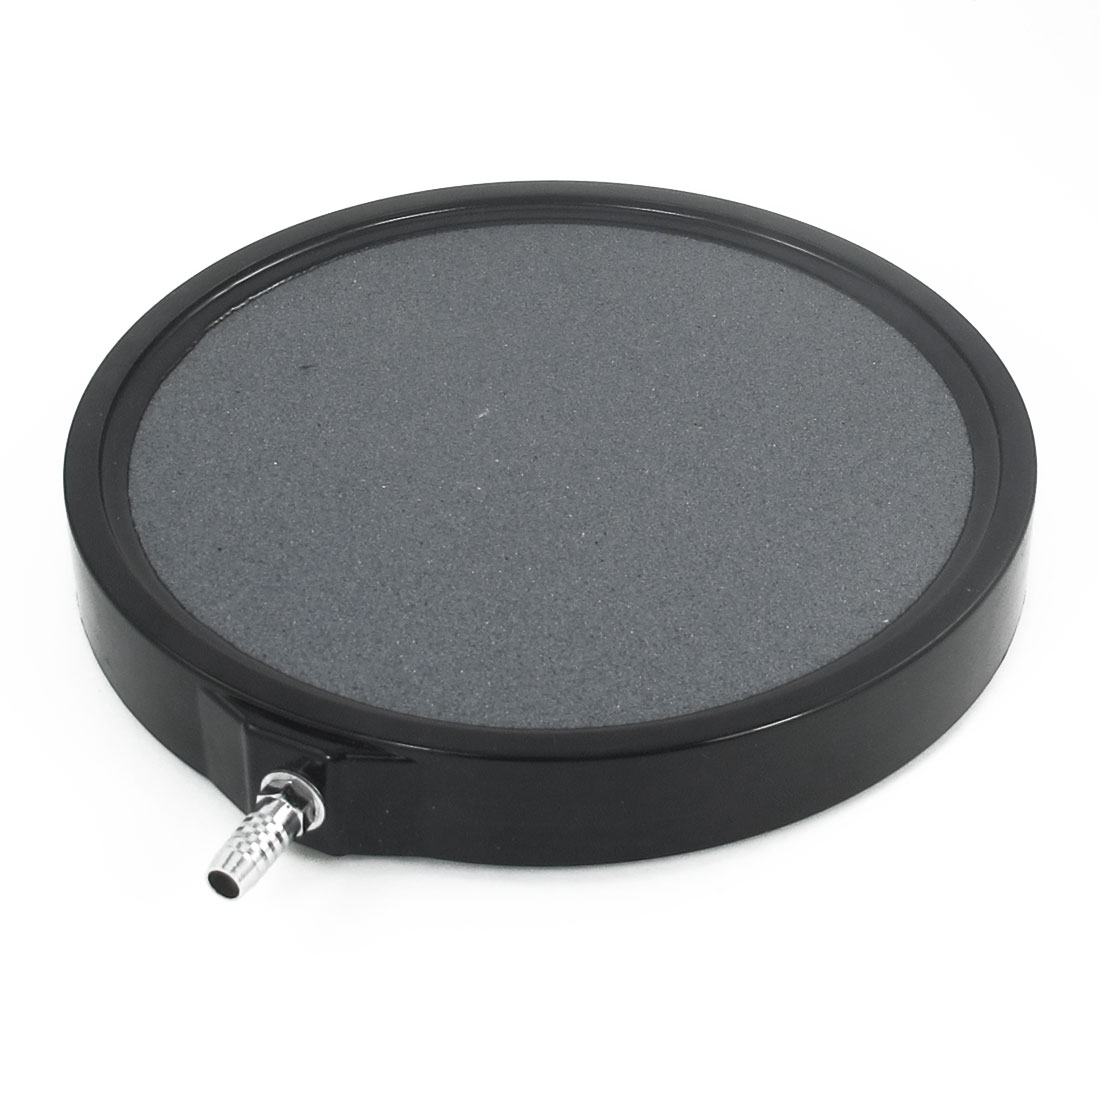 21cm x 2.8cm Disc Shape Air Diffuser Airstone for Aquarium Fish Tank